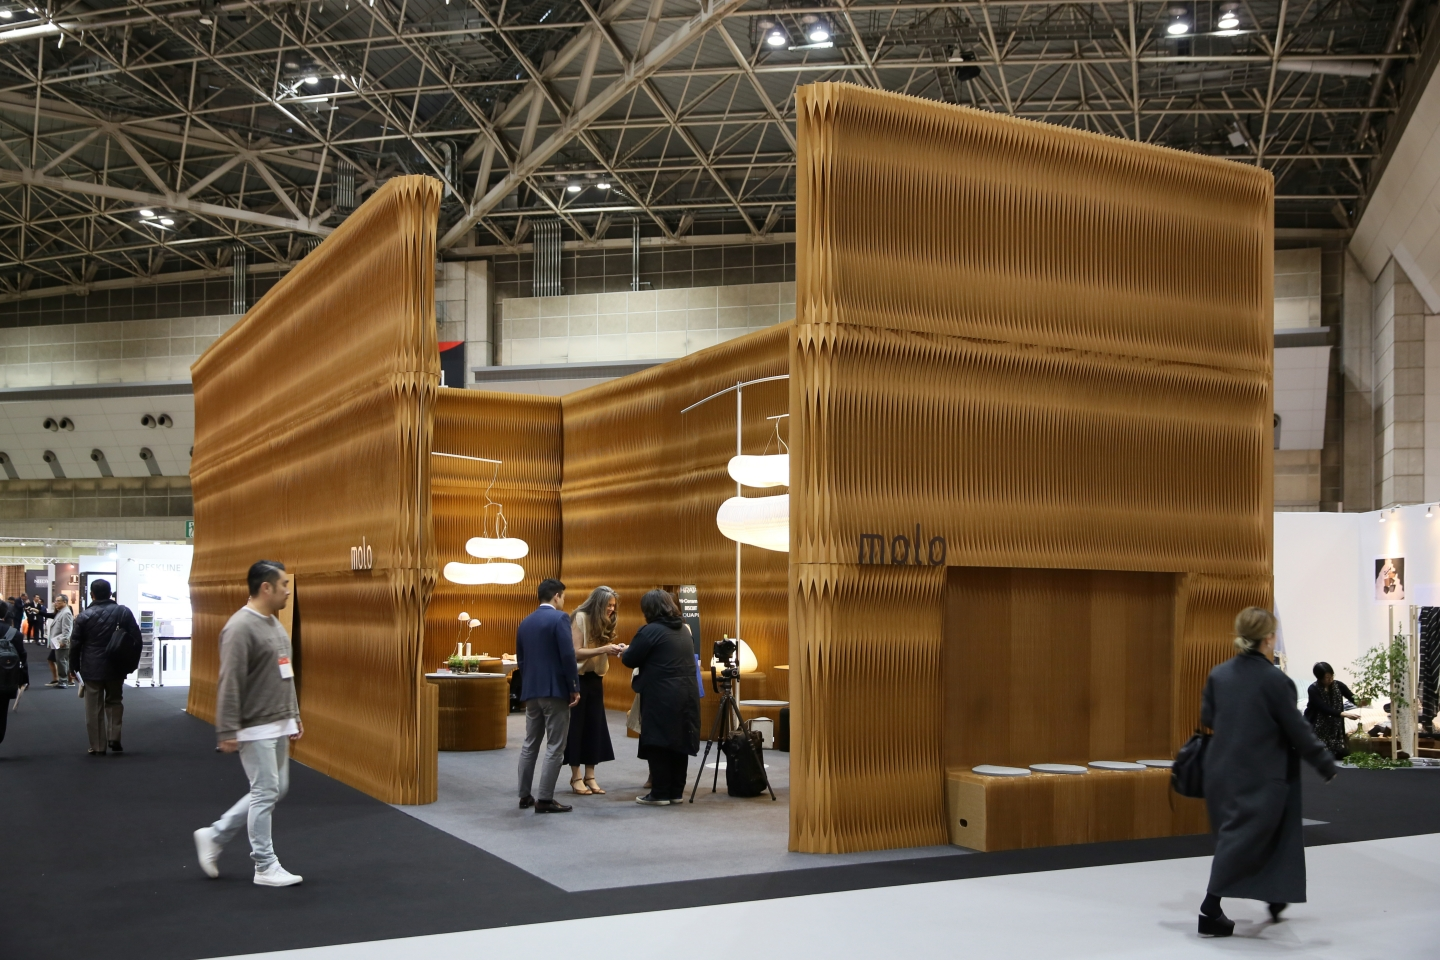 flexible paper accordion furniture by molo molo's - installation at IFFT in Tokyo, Japan